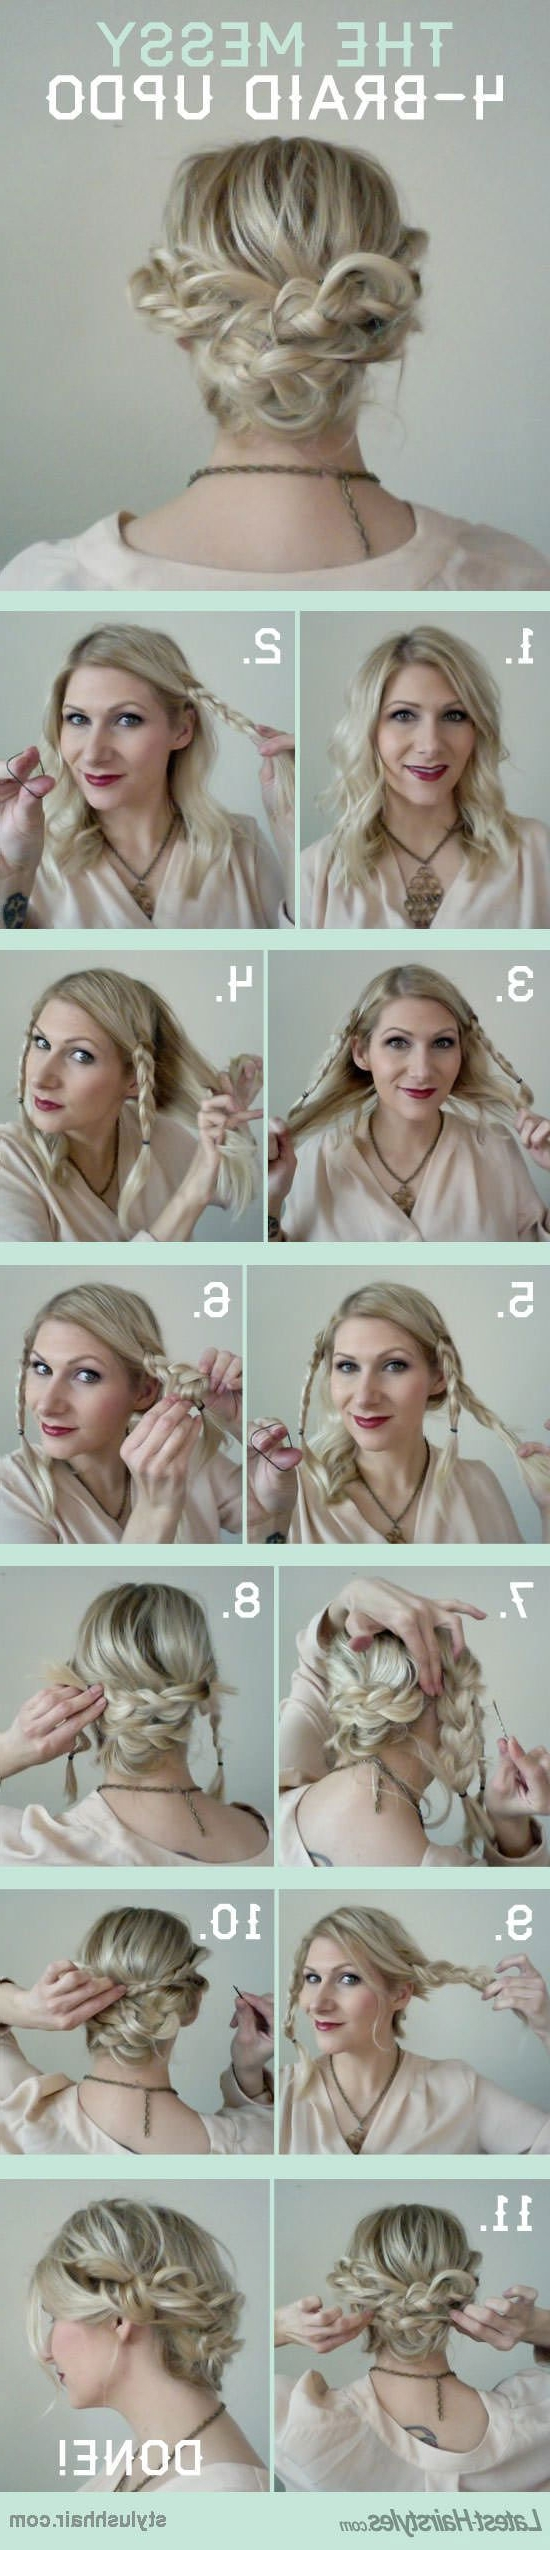 15 Cute And Easy Hairstyle Tutorials For Medium Length Hair – Gurl With Regard To Easy Updos For Thick Medium Length Hair (View 13 of 15)